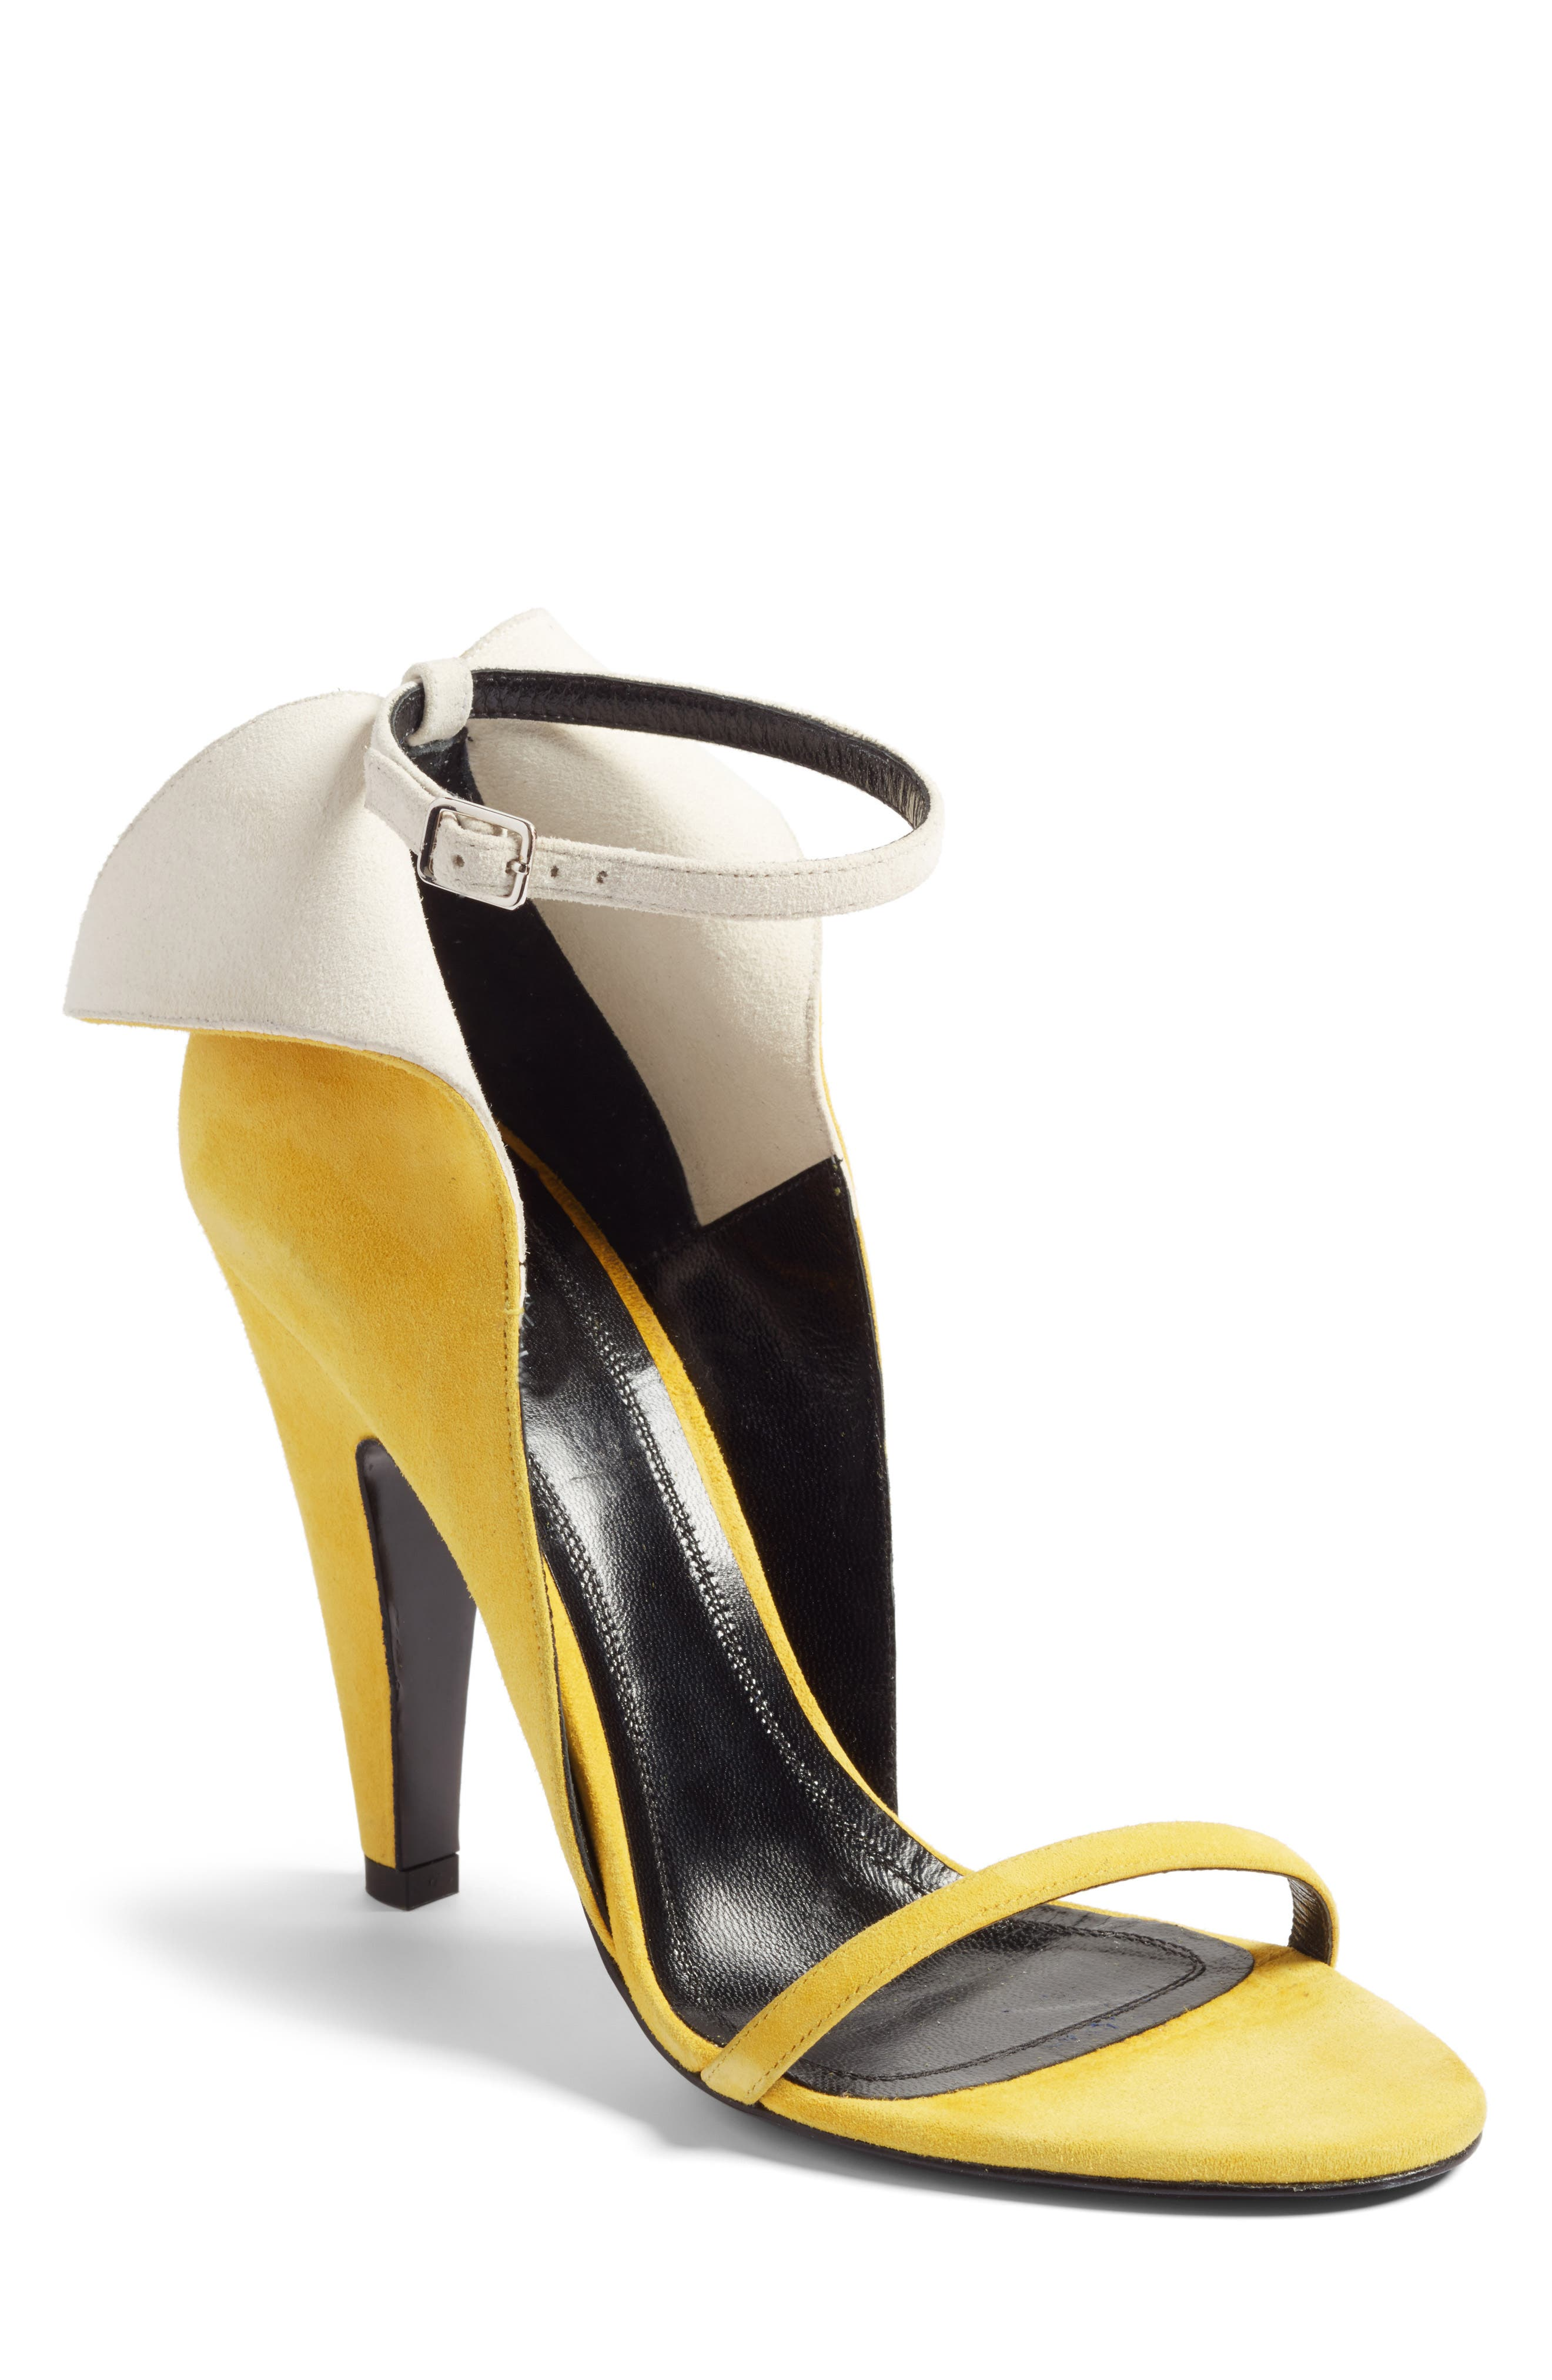 Cammy Sandal,                         Main,                         color, Sunflower/ White Suede